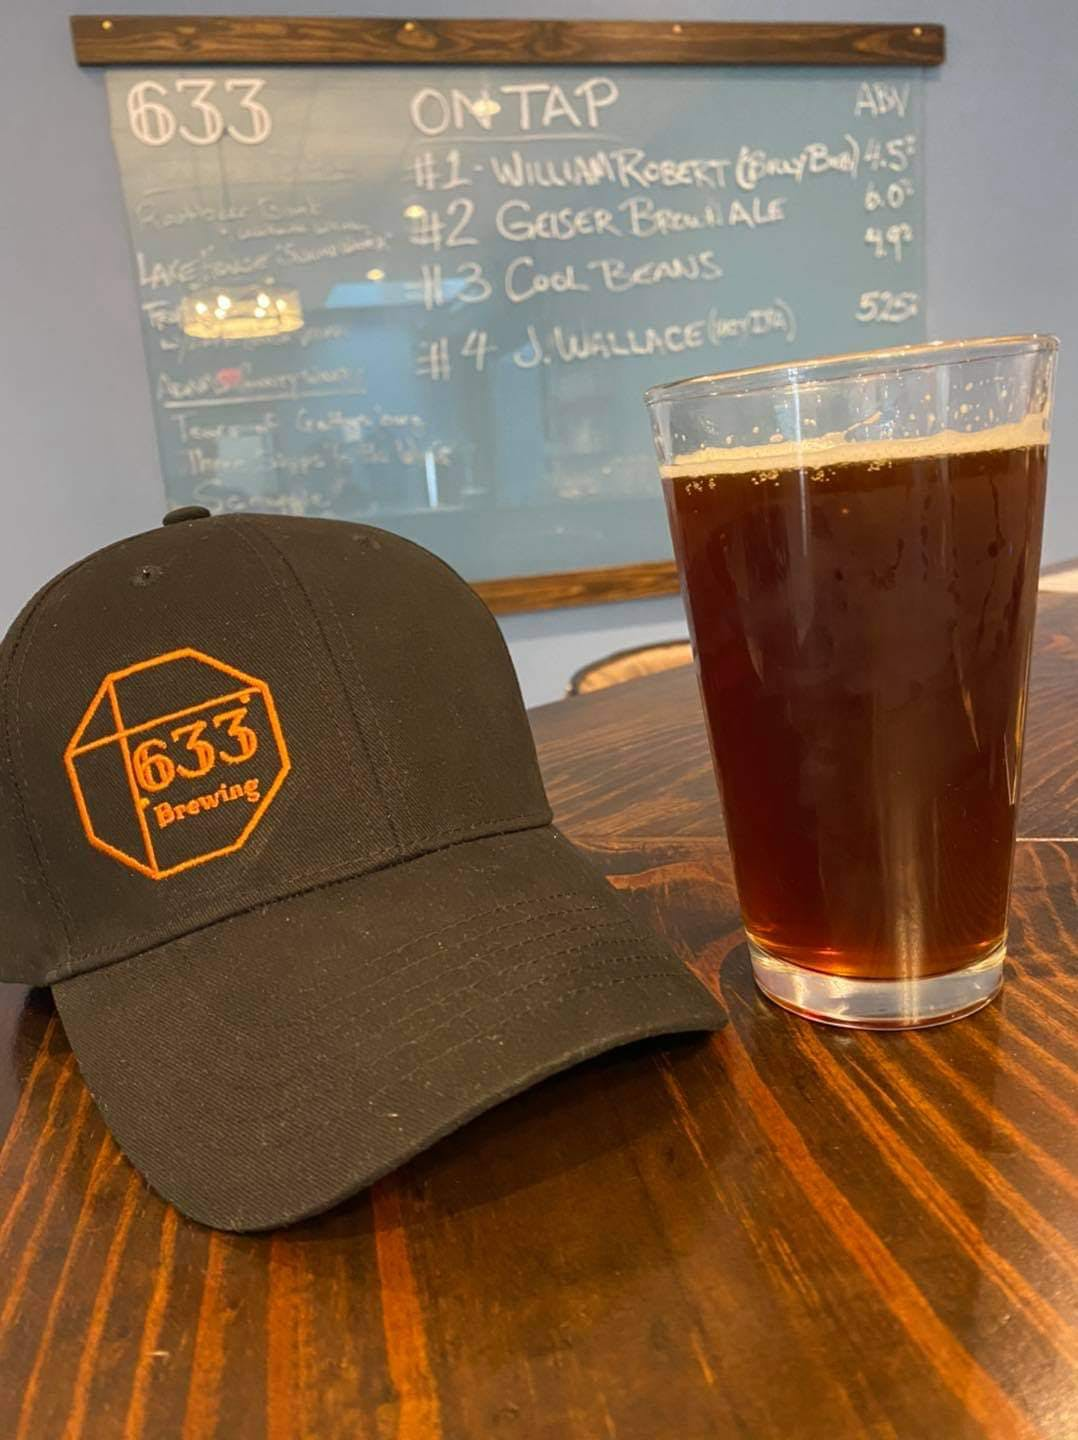 a glass of beer and a hat on a table